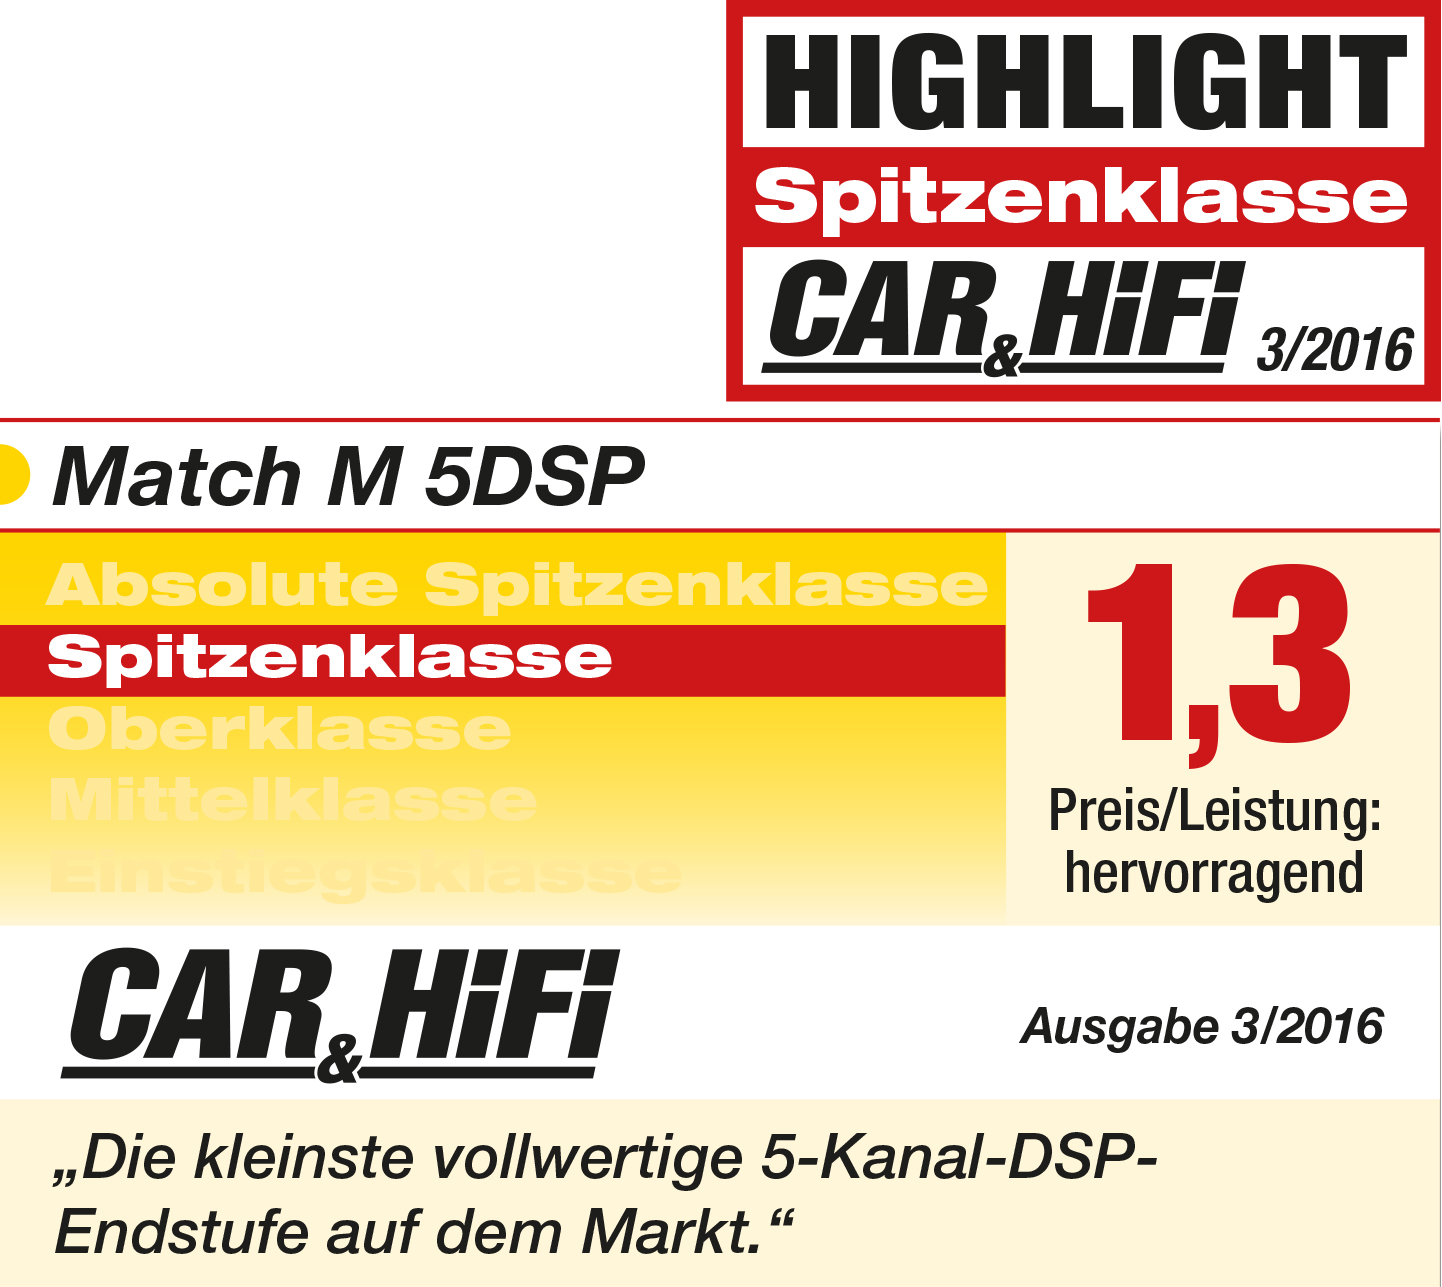 2016-03-Car-Hifi-Bewertung-MATCH-M-5DSP